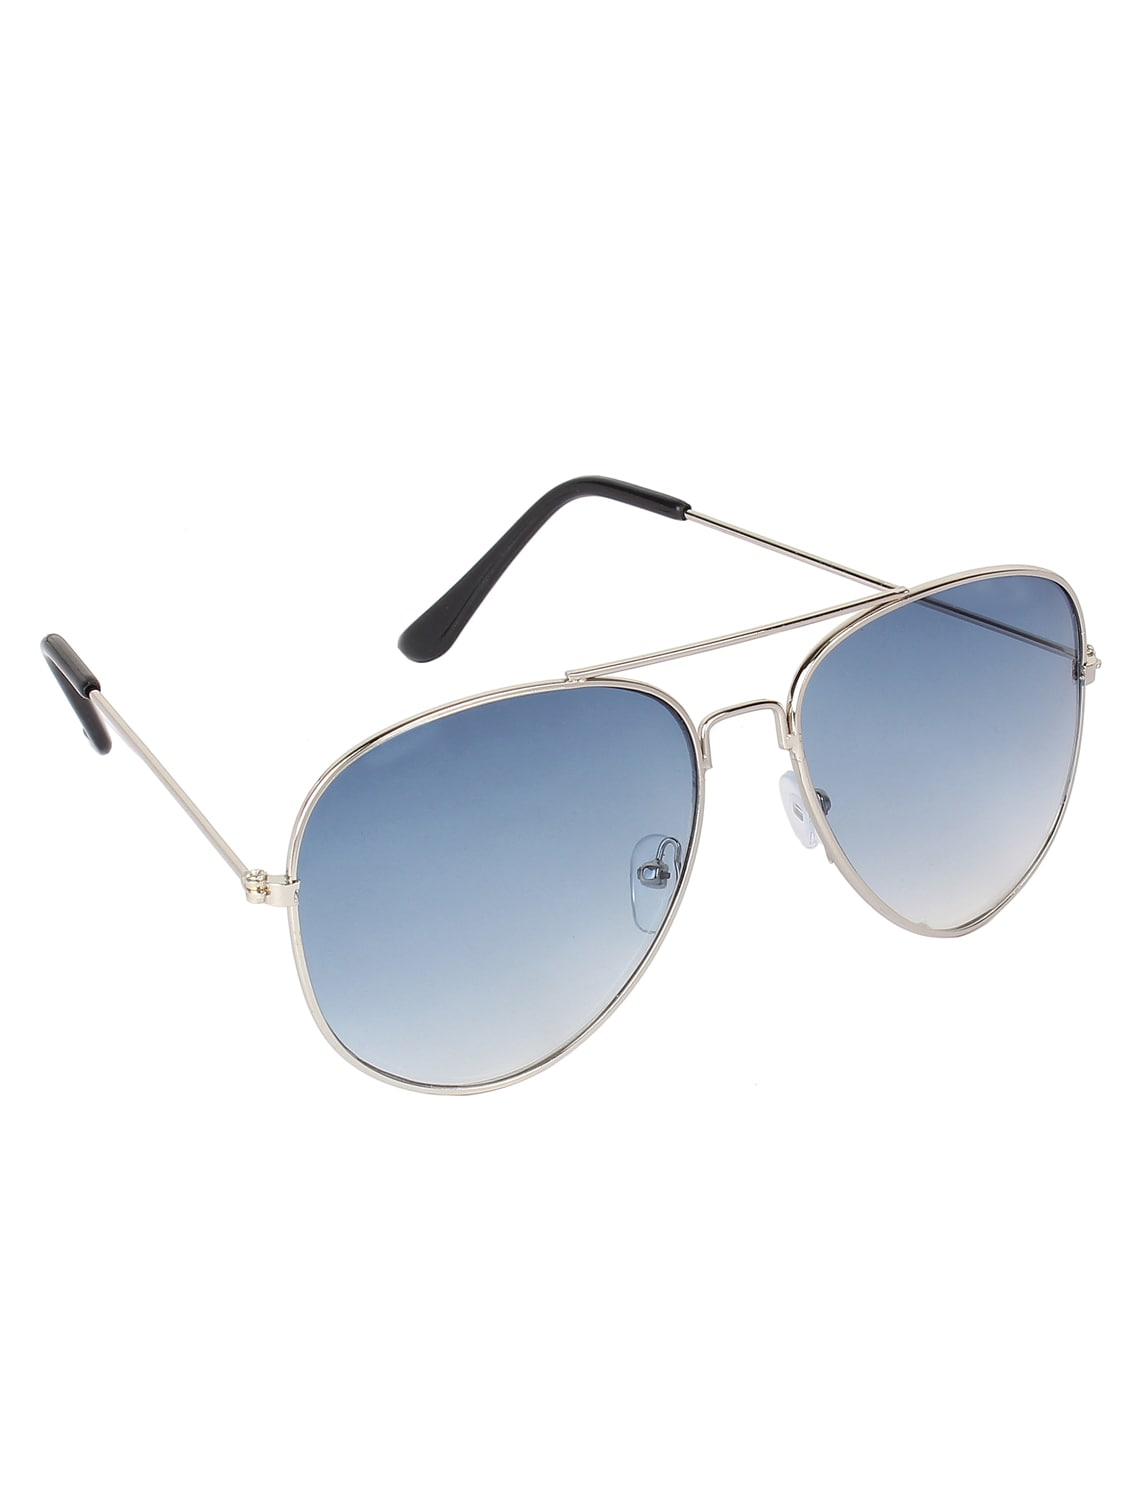 ca104aafd1 Buy Aviator Frame Smart Women Sunglasses by Adine - Online shopping for  Sunglasses in India